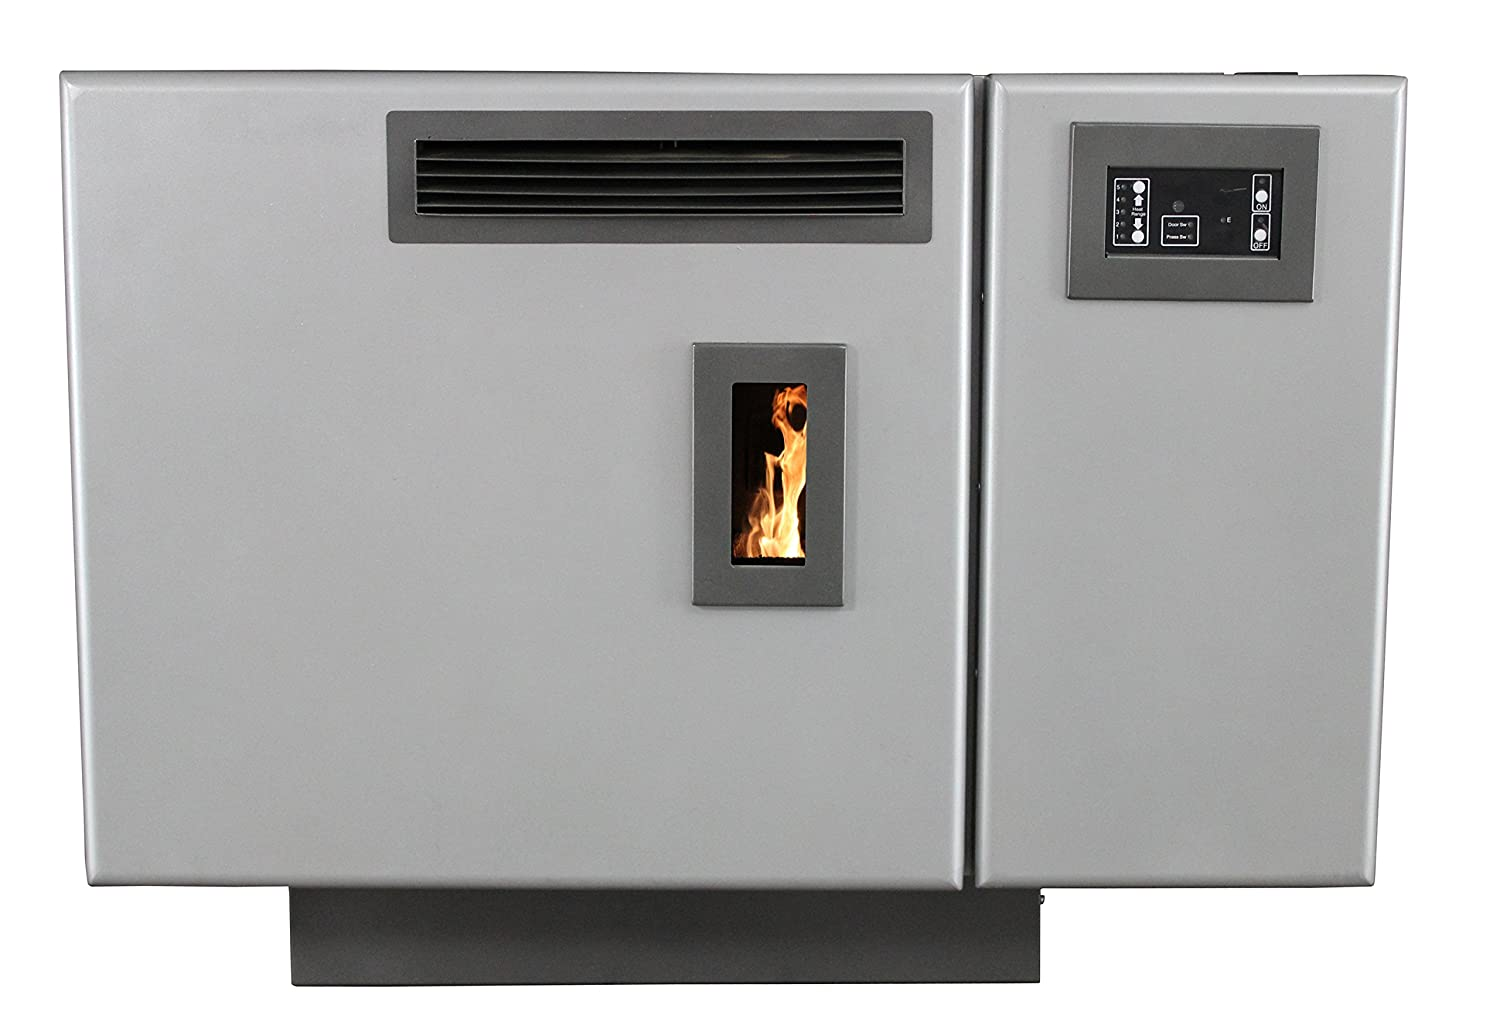 Pellet Furnace With Thermostat Hopper Wiring Diagram Us Stove Wall Mount Direct Vent Heater Home Kitchen 1500x1032